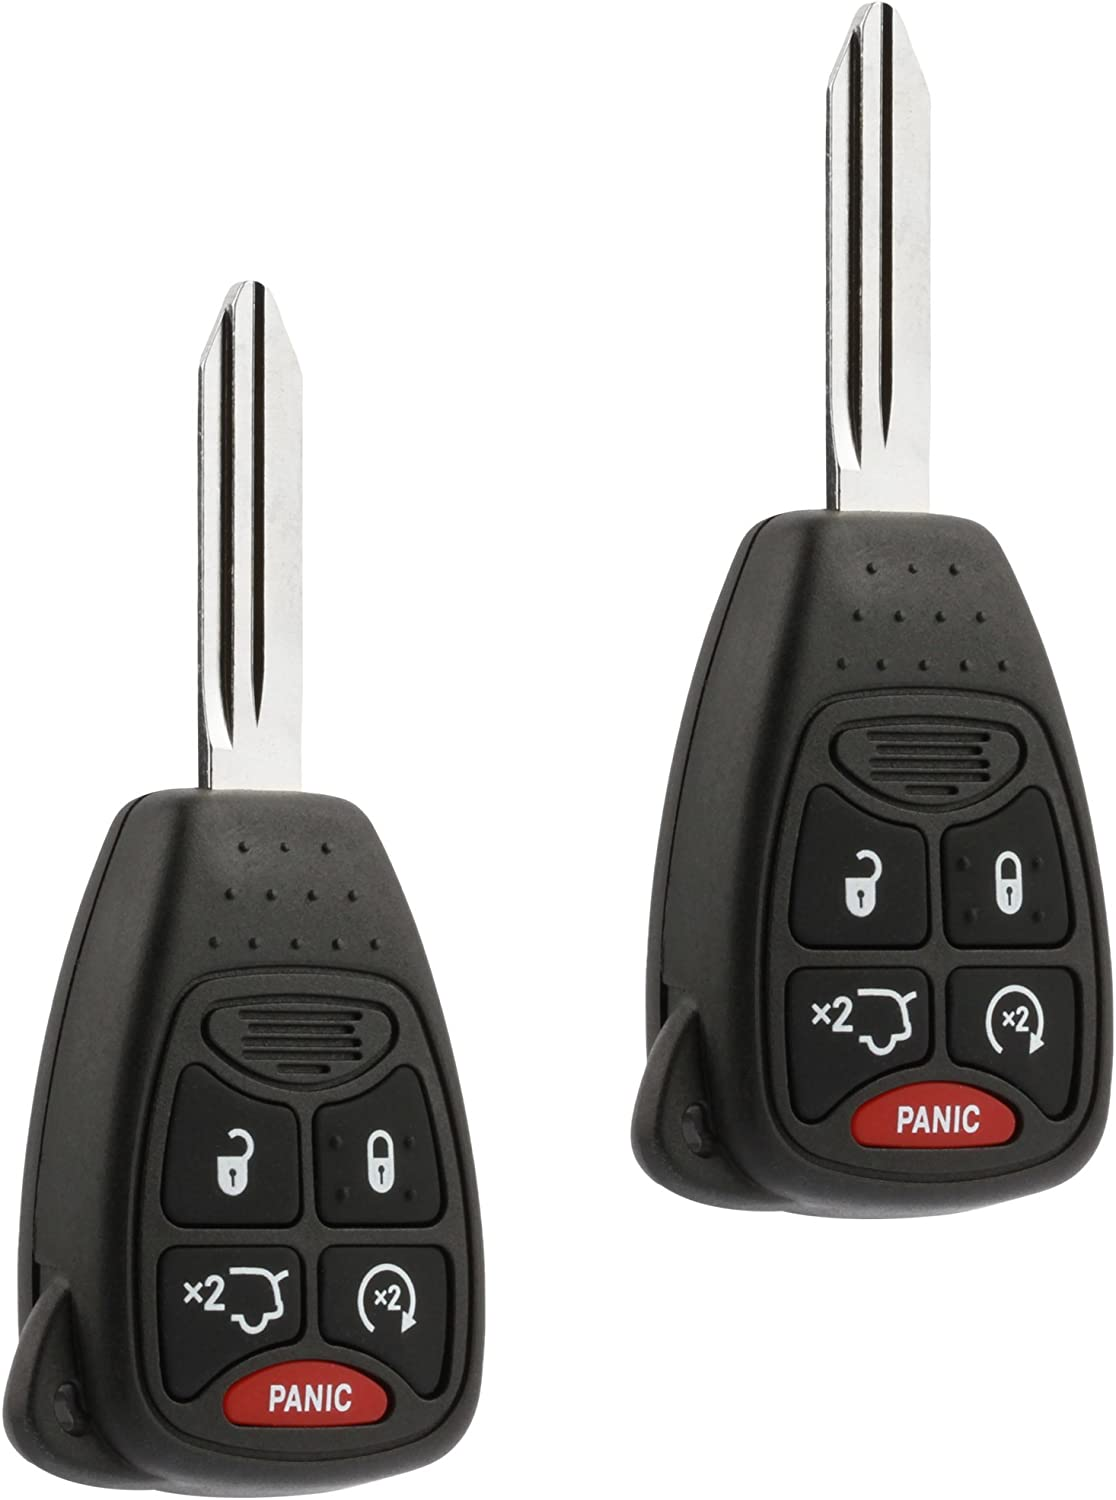 Key Fob fits Chrysler 200 300 300c PT Cruiser Sebring//Dodge Avenger Charger//Jeep Commander Grand Cherokee Liberty Keyless Entry Remote 2006 2007 2008 2009 2010 2011 2012 2013 2014 OHT692427AA